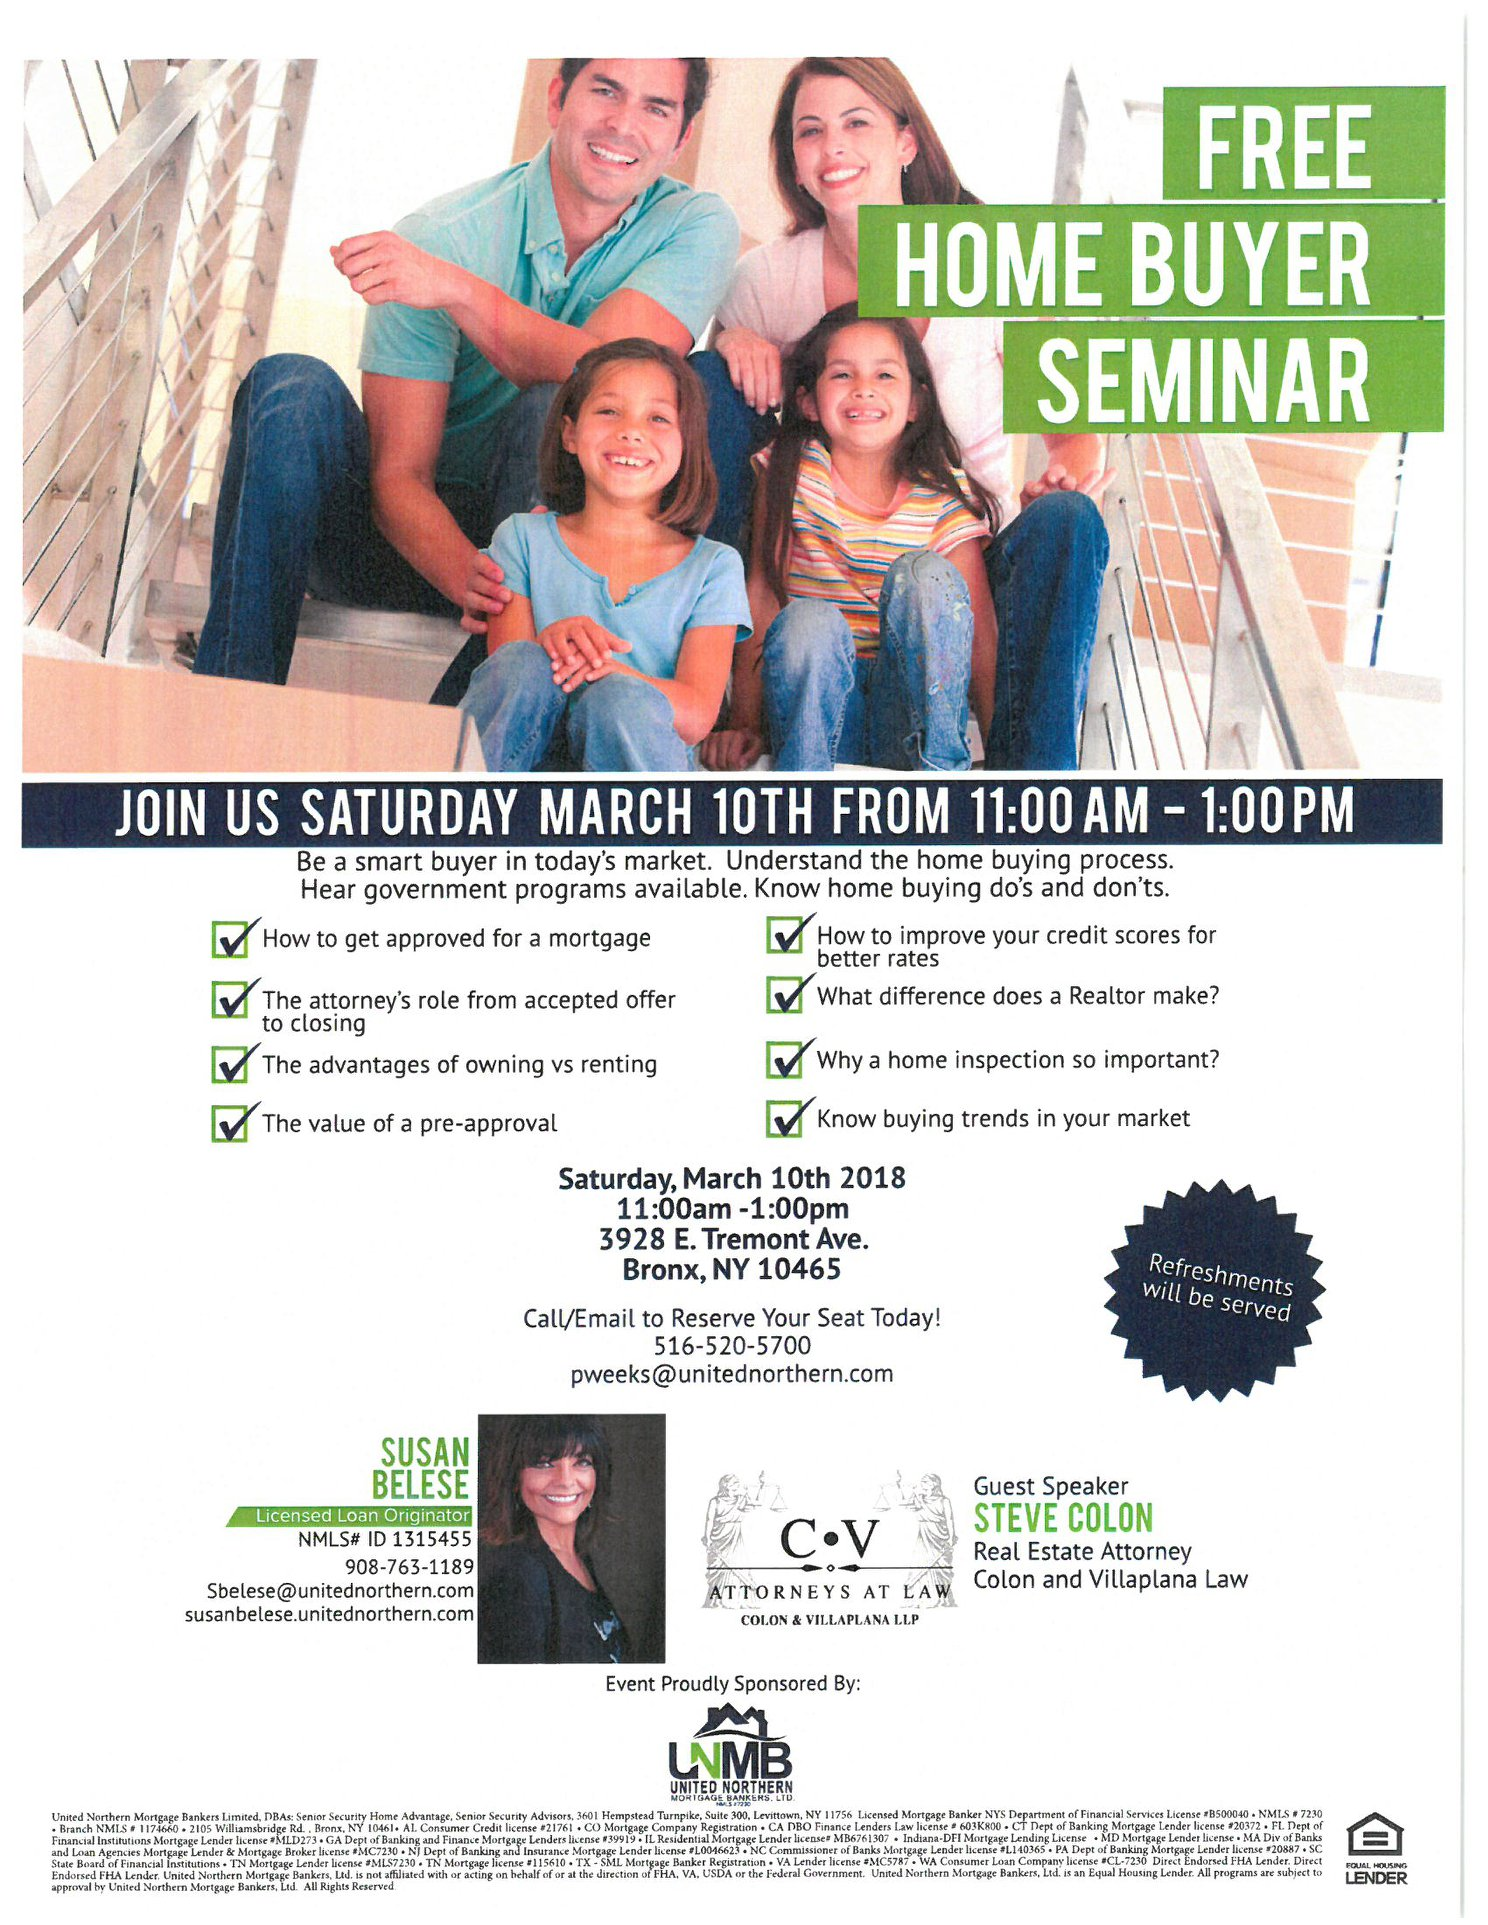 Home Buyer Seminar - March 10th